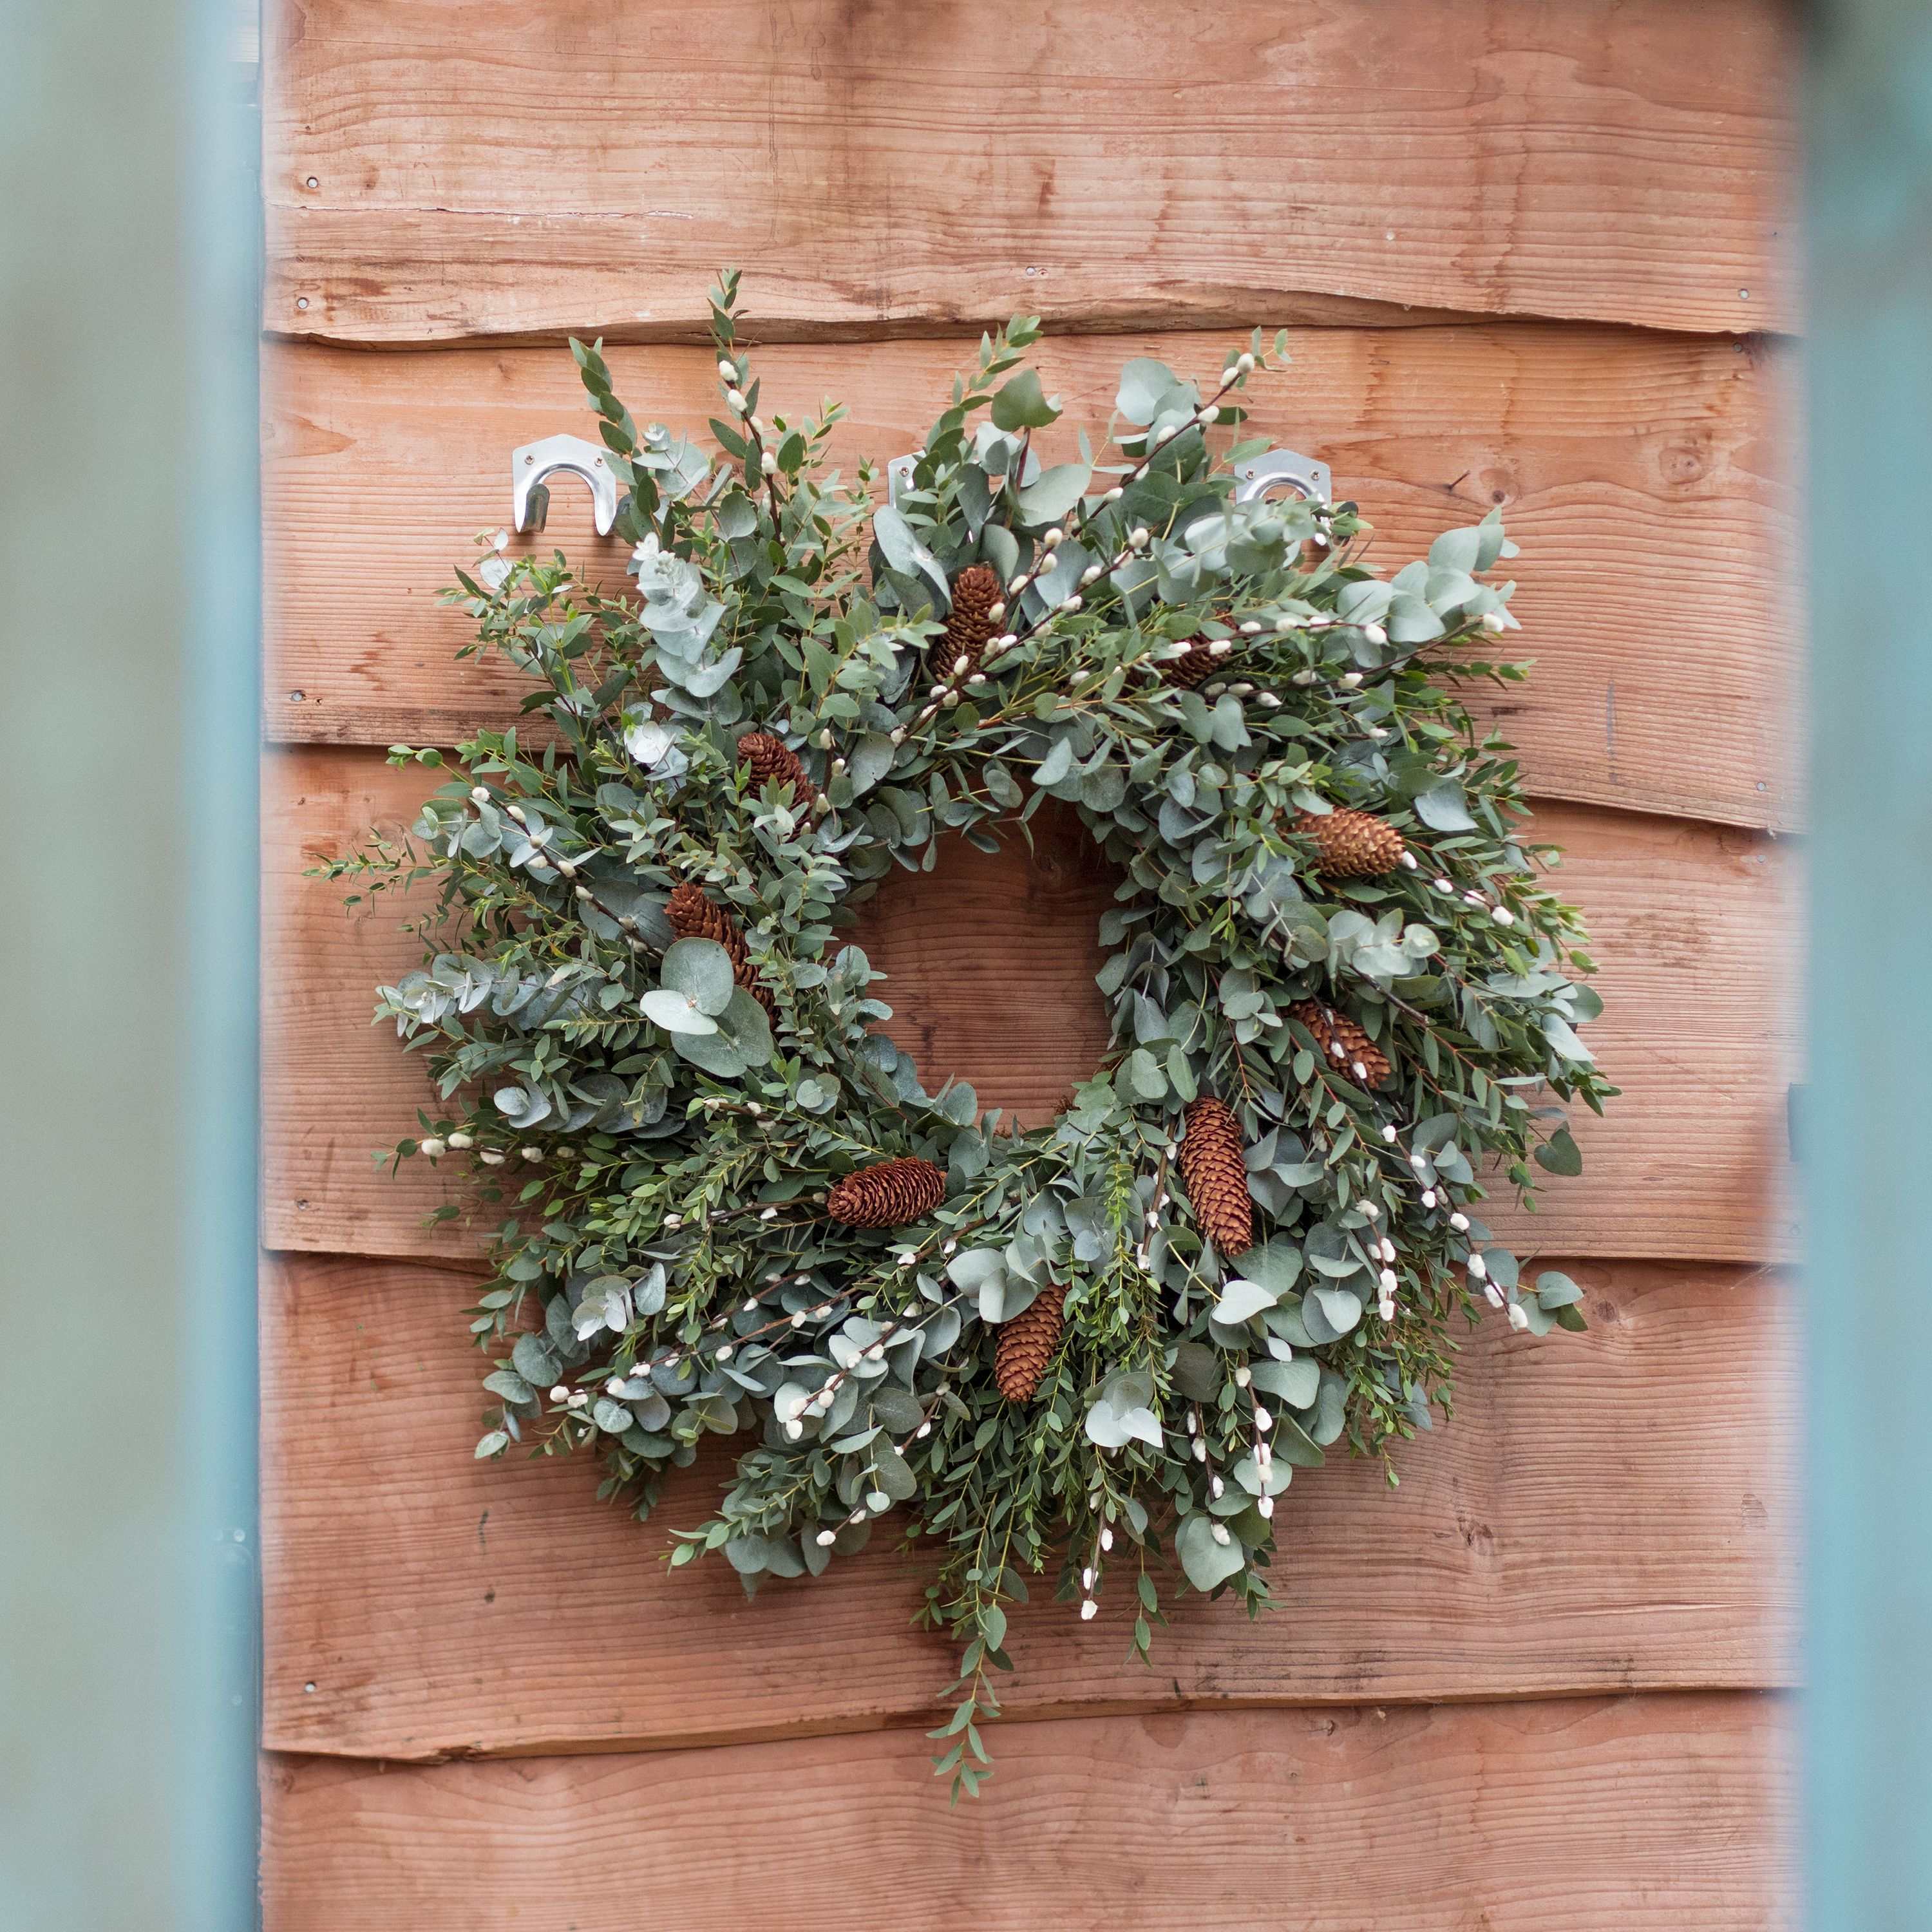 Hand Tied Festive Wreaths Are Available Online And In Our Richmond And Covent Garden Stores Over The Christmas Period Christmas Wreaths Garden Shop Wreaths